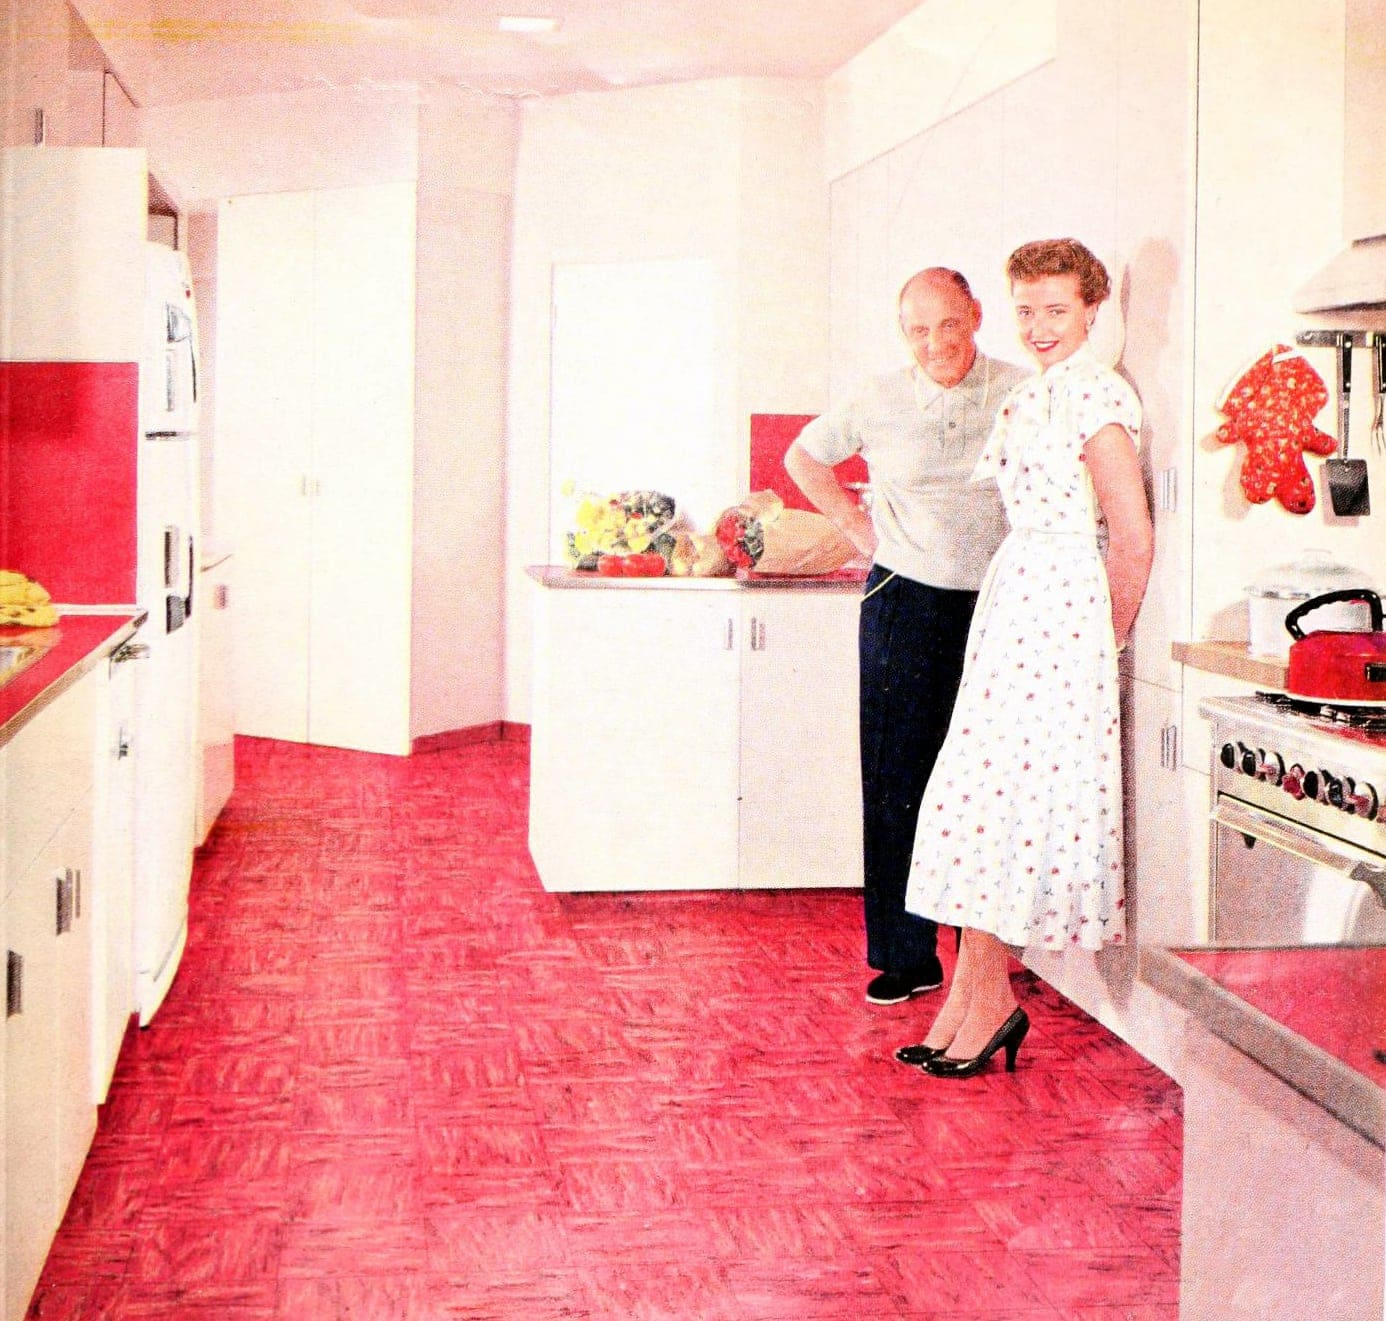 Bright pink kitchen floor with light pink walls